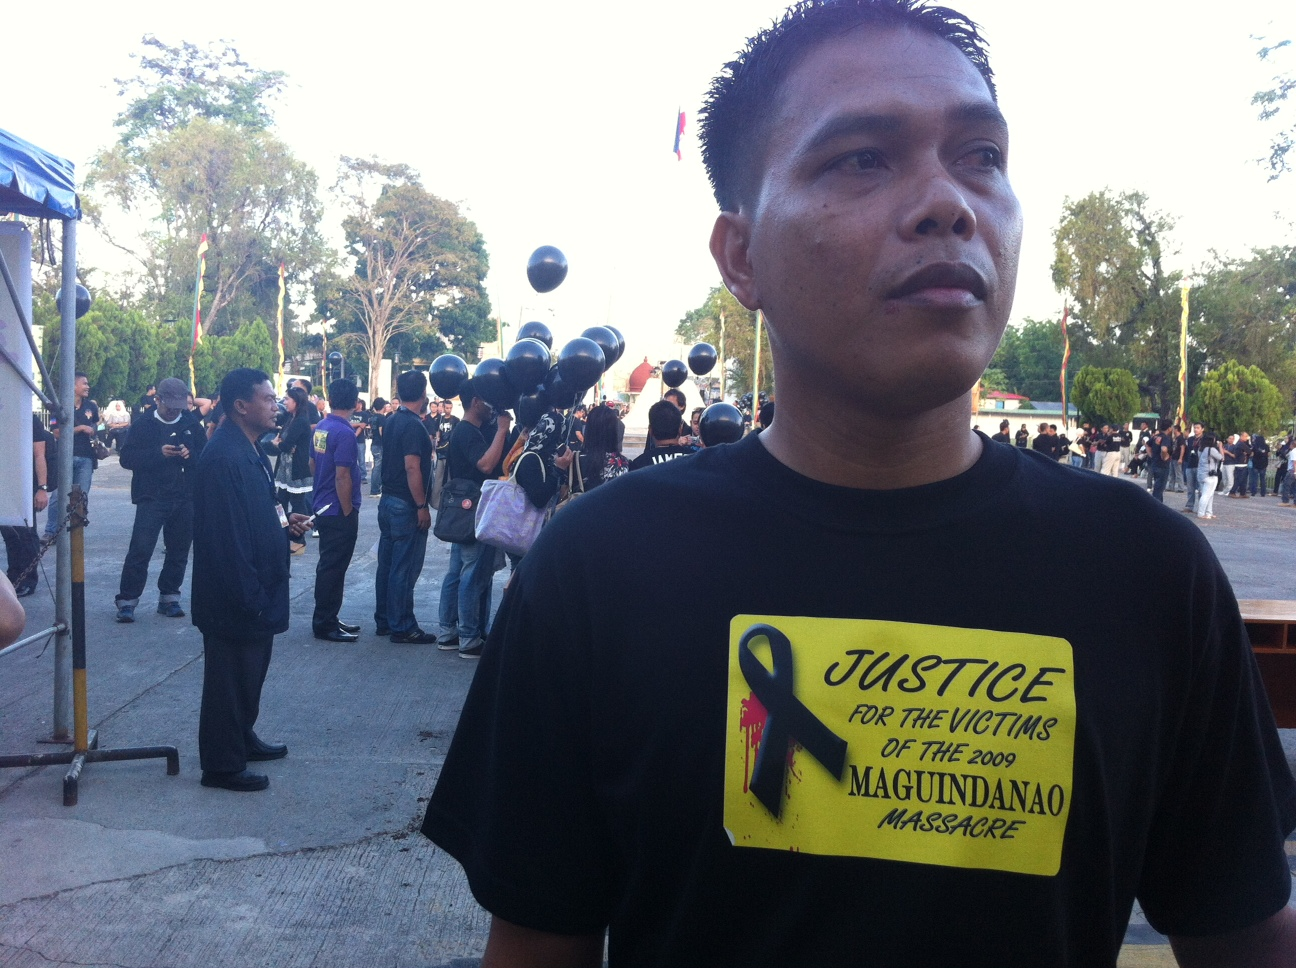 JUSTICE FOR THE VICTIMS. Attendees of the commemoration wore shirts that asked for justice for the victims of the Maguindanao massacre that left 58 dead, 32 of whom were journalists. Photo by Ferdinandh Cabrera.